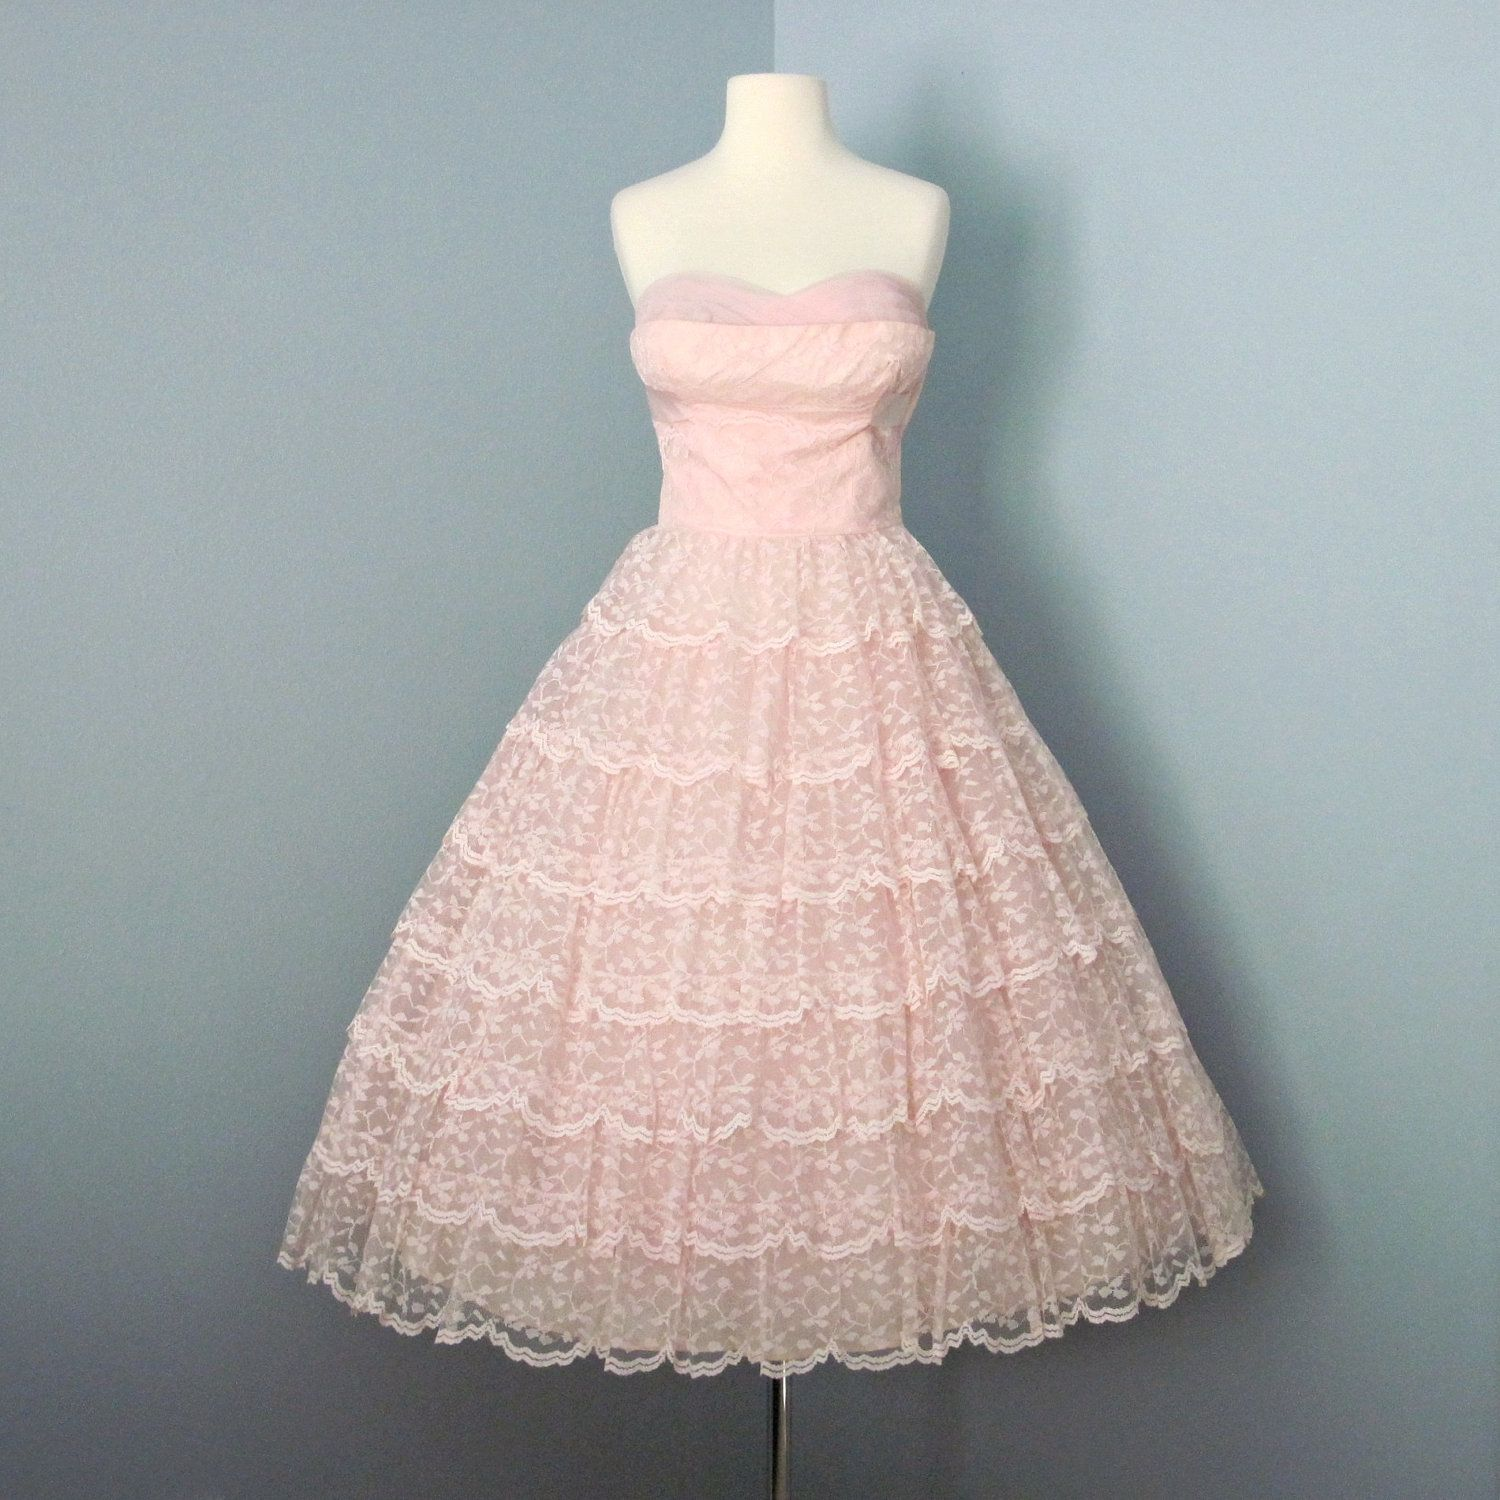 1950s Prom Dress / Pale Pink Vintage Lace Tulle Wedding Dress Prom Dress